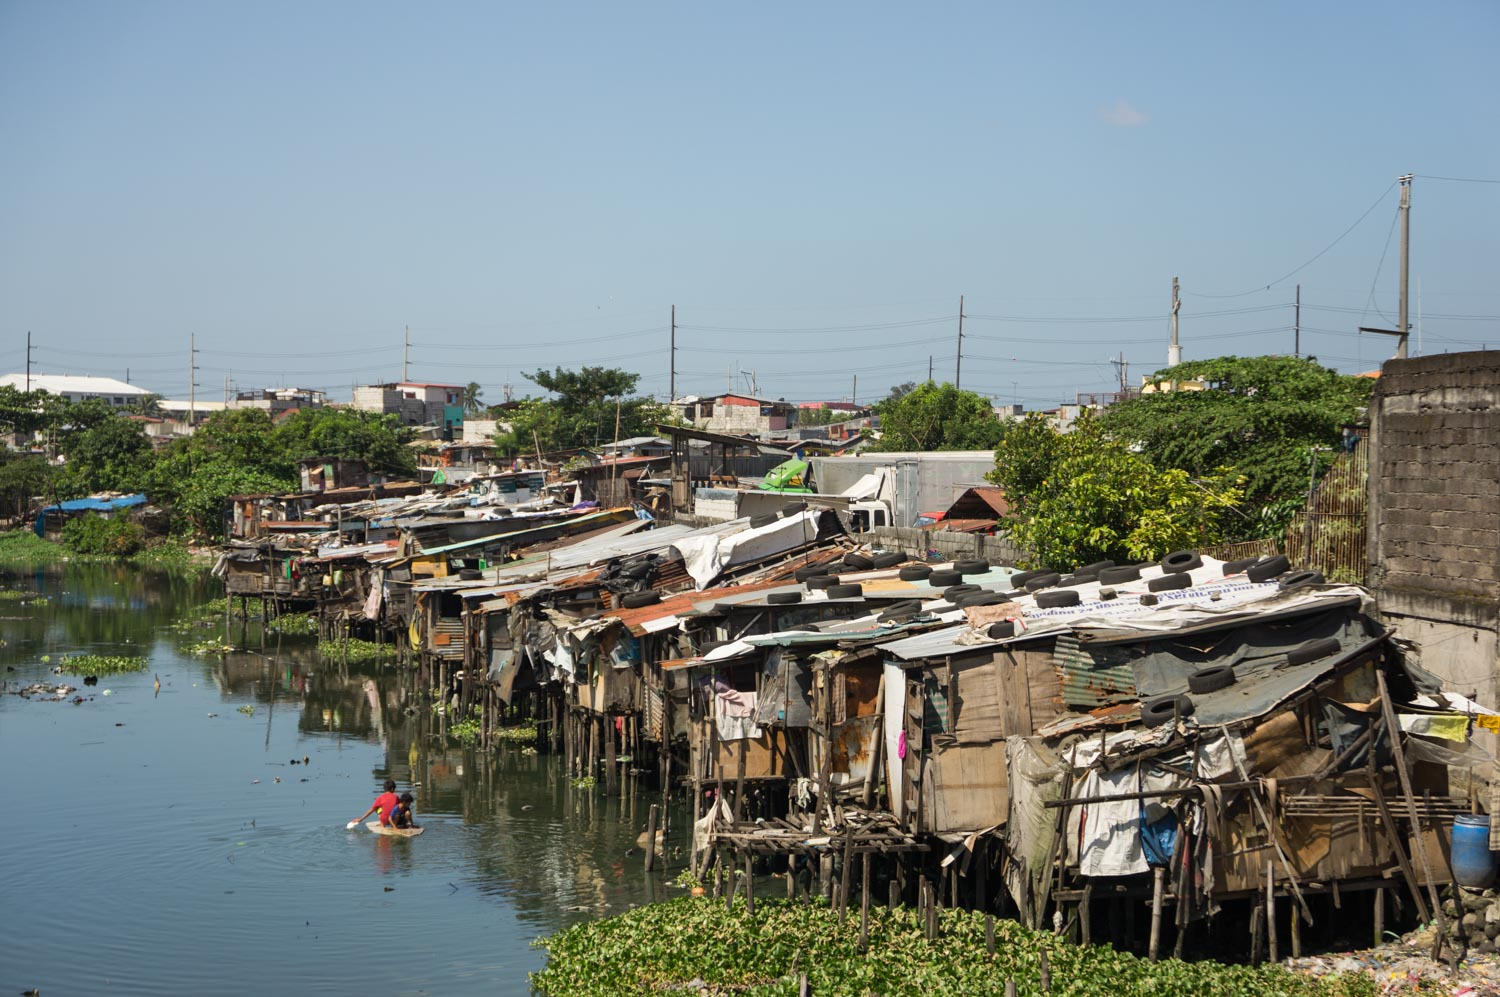 In Paranaque, these wood houses on stilts built on the river were destroyed by the government for safety reasons. The violent typhoons can make a lot of victims. Paranaque, Metro Manila, Philippines - 22/10/2012